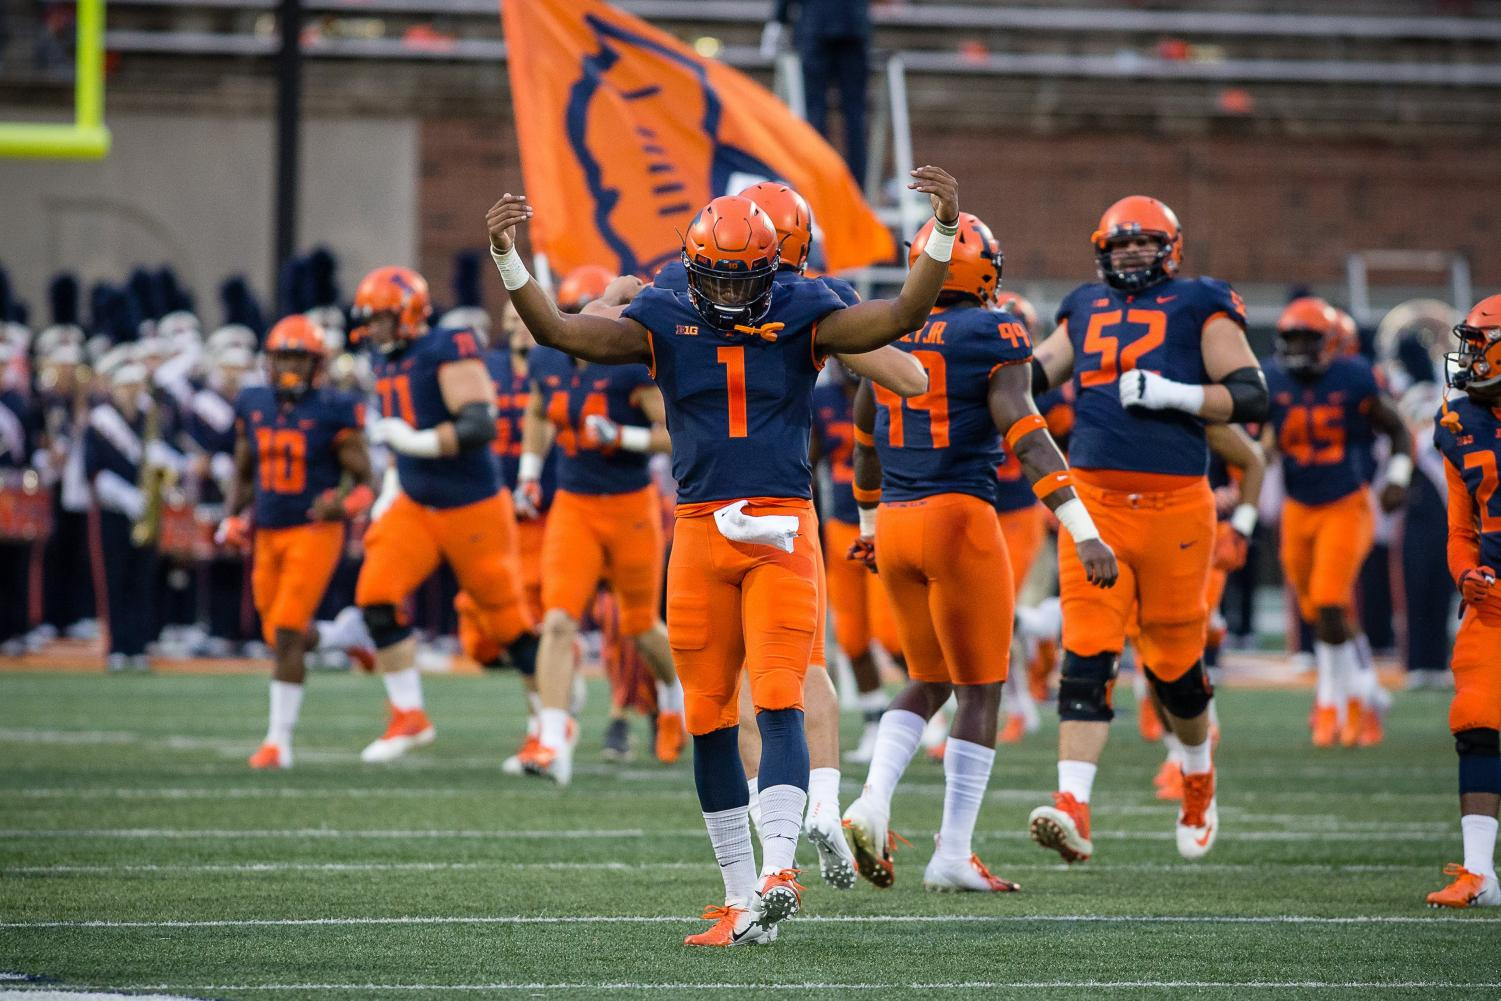 Illinois quarterback AJ Bush celebrates while running onto the field at the start of the game against Western Illinois at Memorial Stadium on Sept. 8. After two wins and two losses, this past bye week allowed the Illini to reevaluate and rest up.